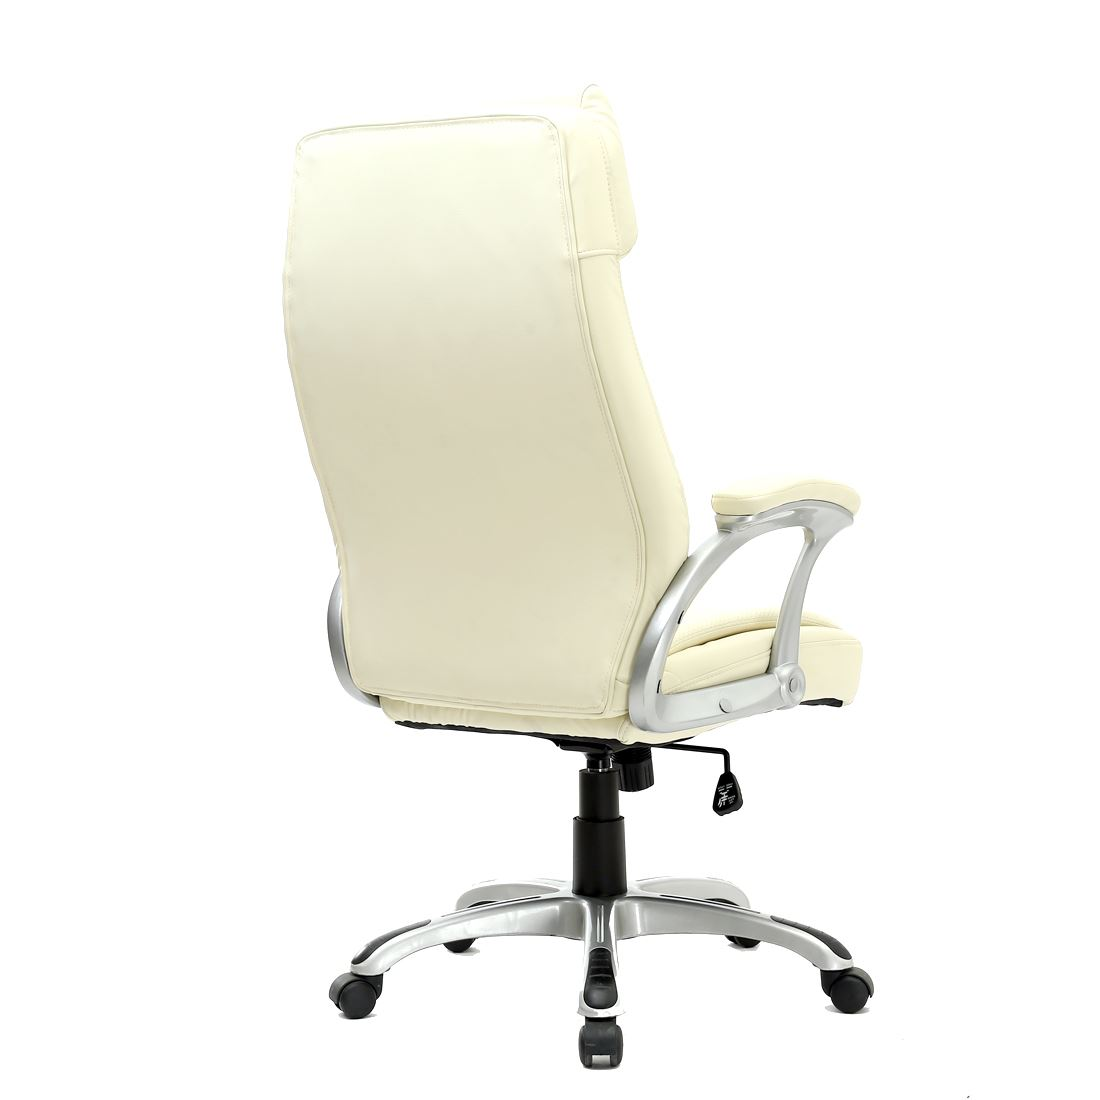 MODINI HIGH BACK EXECUTIVE OFFICE CHAIR LEATHER PUTER